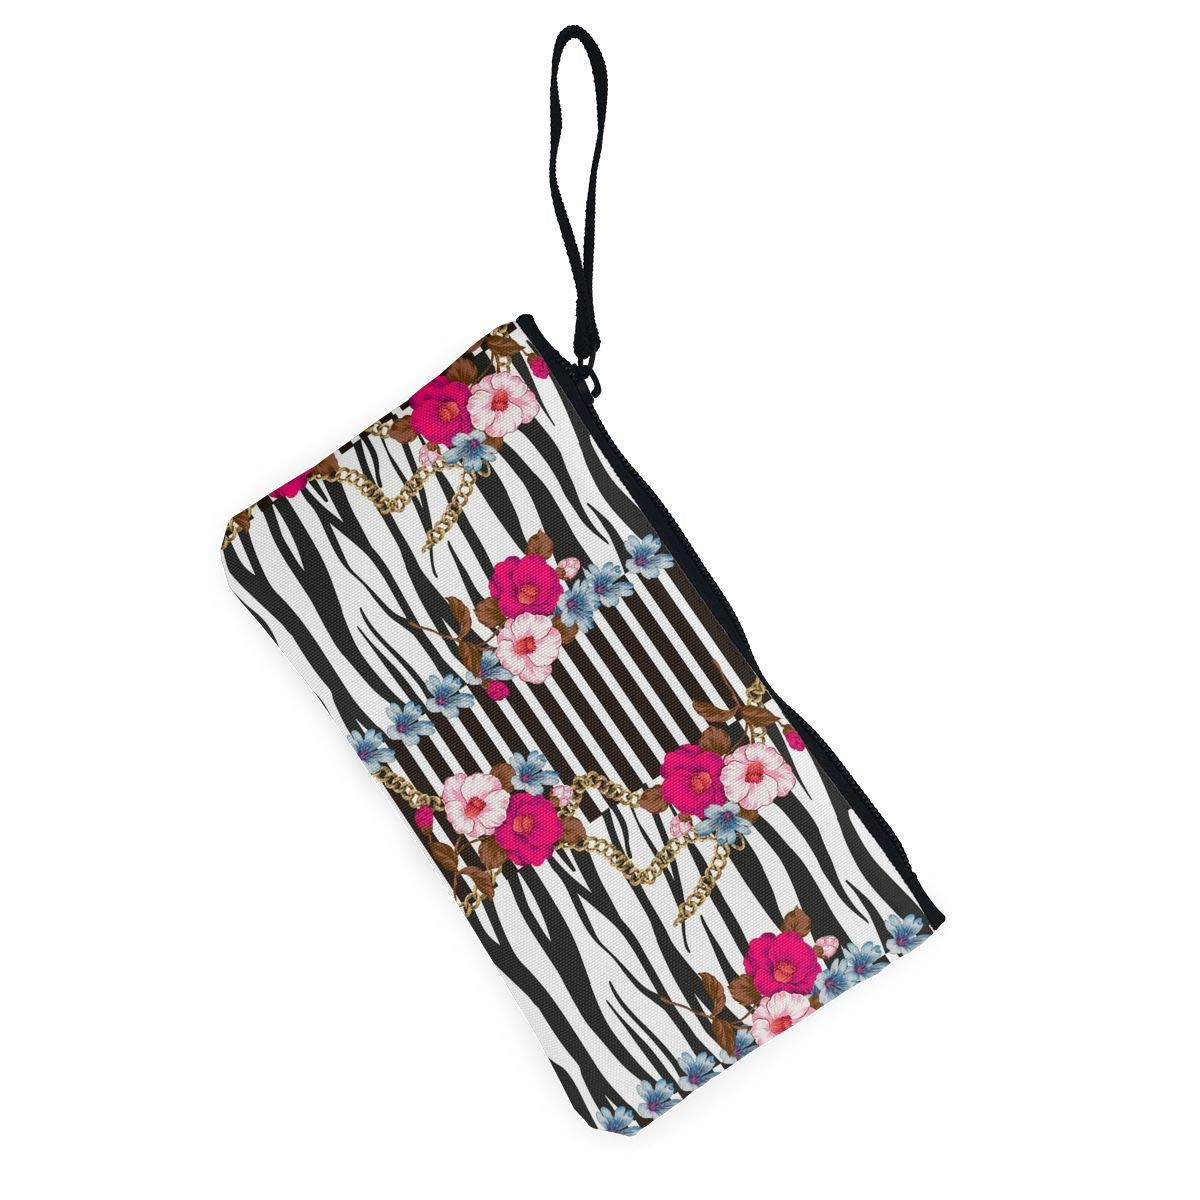 Leopard Flowers Pattern Canvas Coin Purse Small Cute Change Cash Bag with Zip